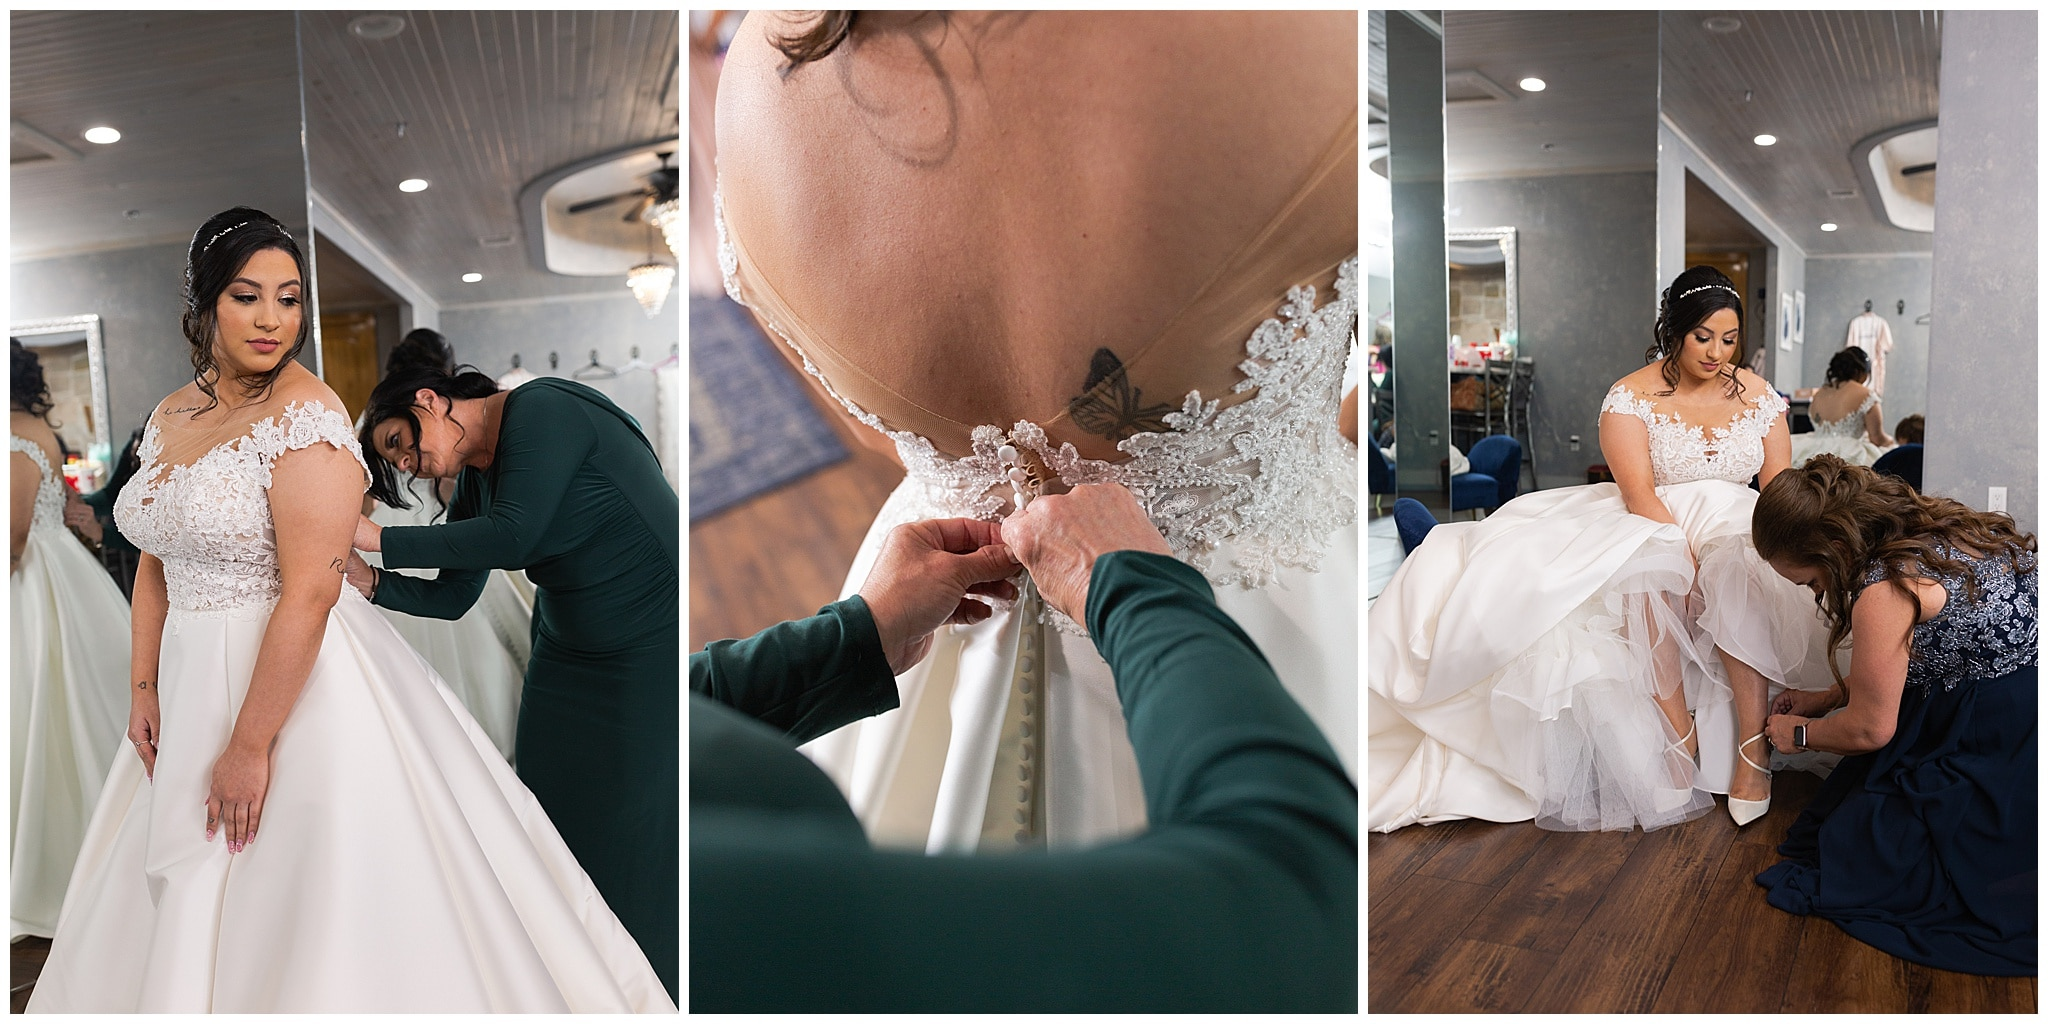 bride getting in her gown at Bridal Oaks in Cypress Texas by Houston wedding photographer Swish and Click Photography